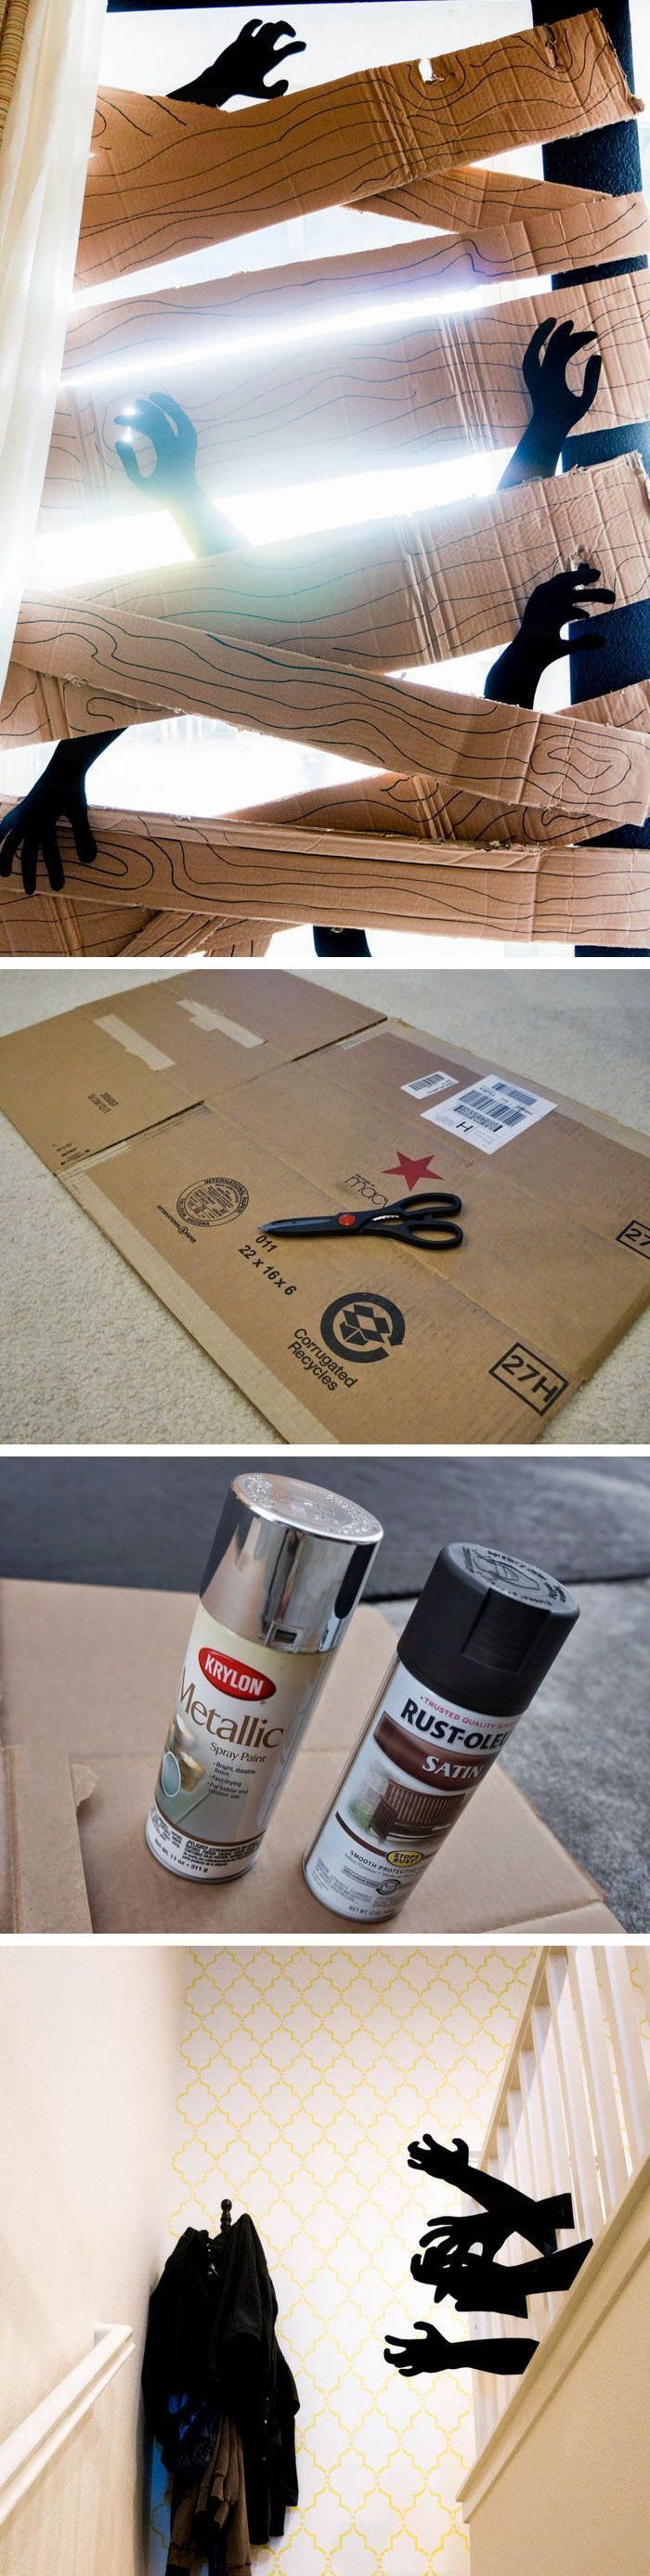 Cardboard Zombie Barricade Click Pic for 20 DIY Halloween - How To Make Halloween Decorations